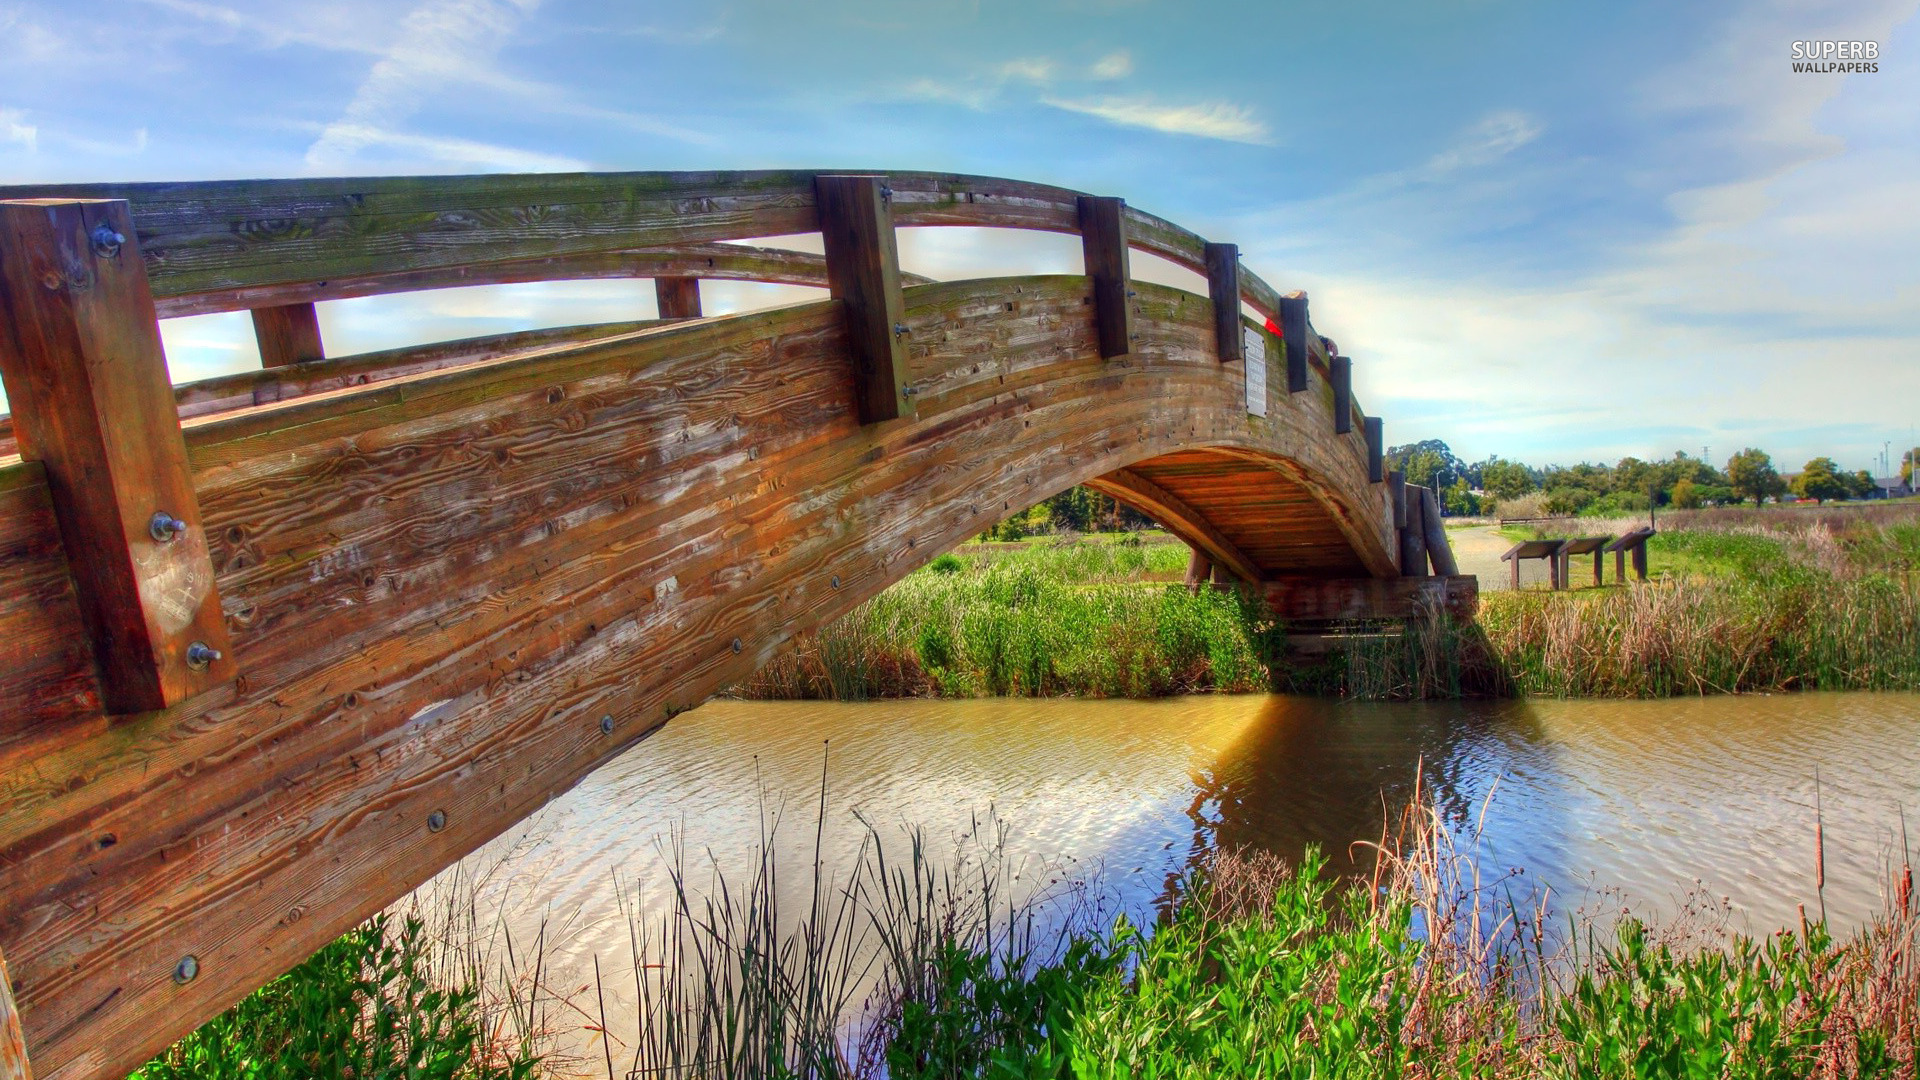 Wooden Bridge Wallpapers, Awesome 43 Wooden Bridge Wallpapers | HD ...